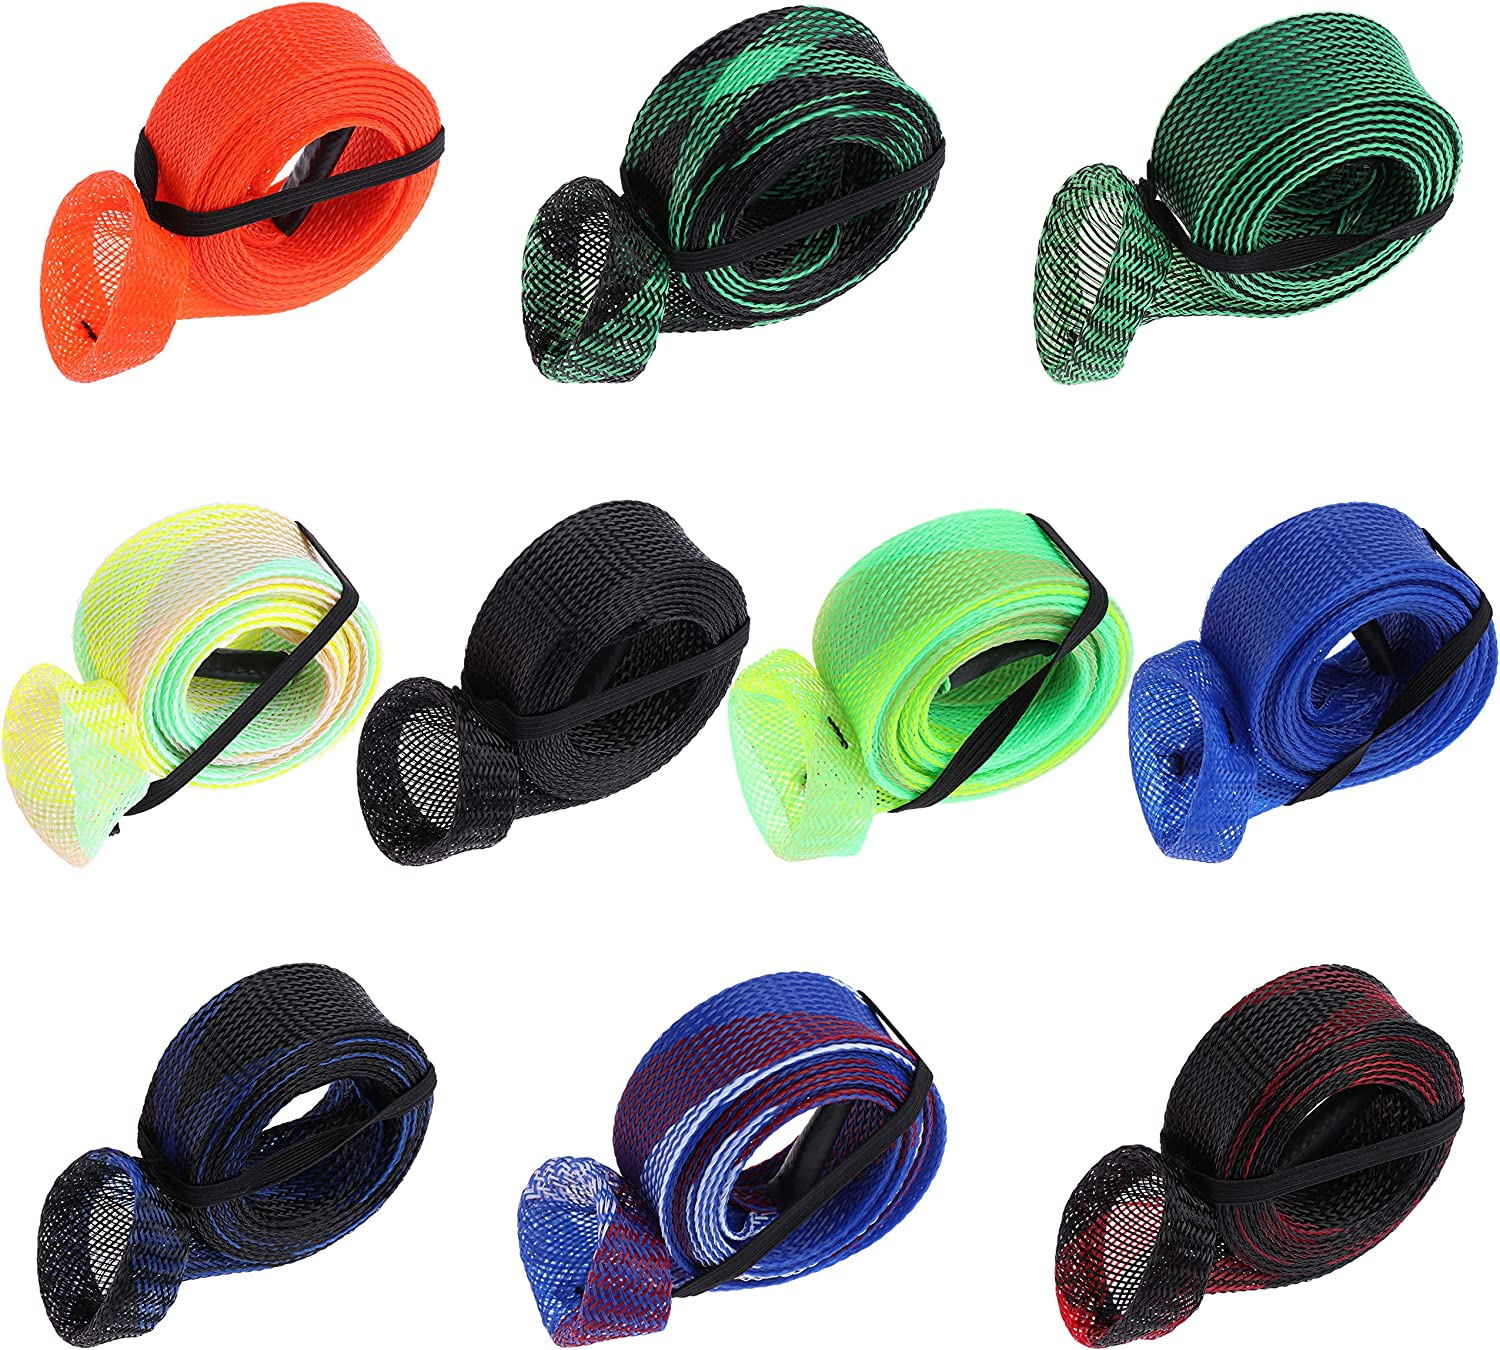 4 Pack Fishing Rod Sleeve Sock Pole Glove Protector Abrasion Proof Cover #P9A